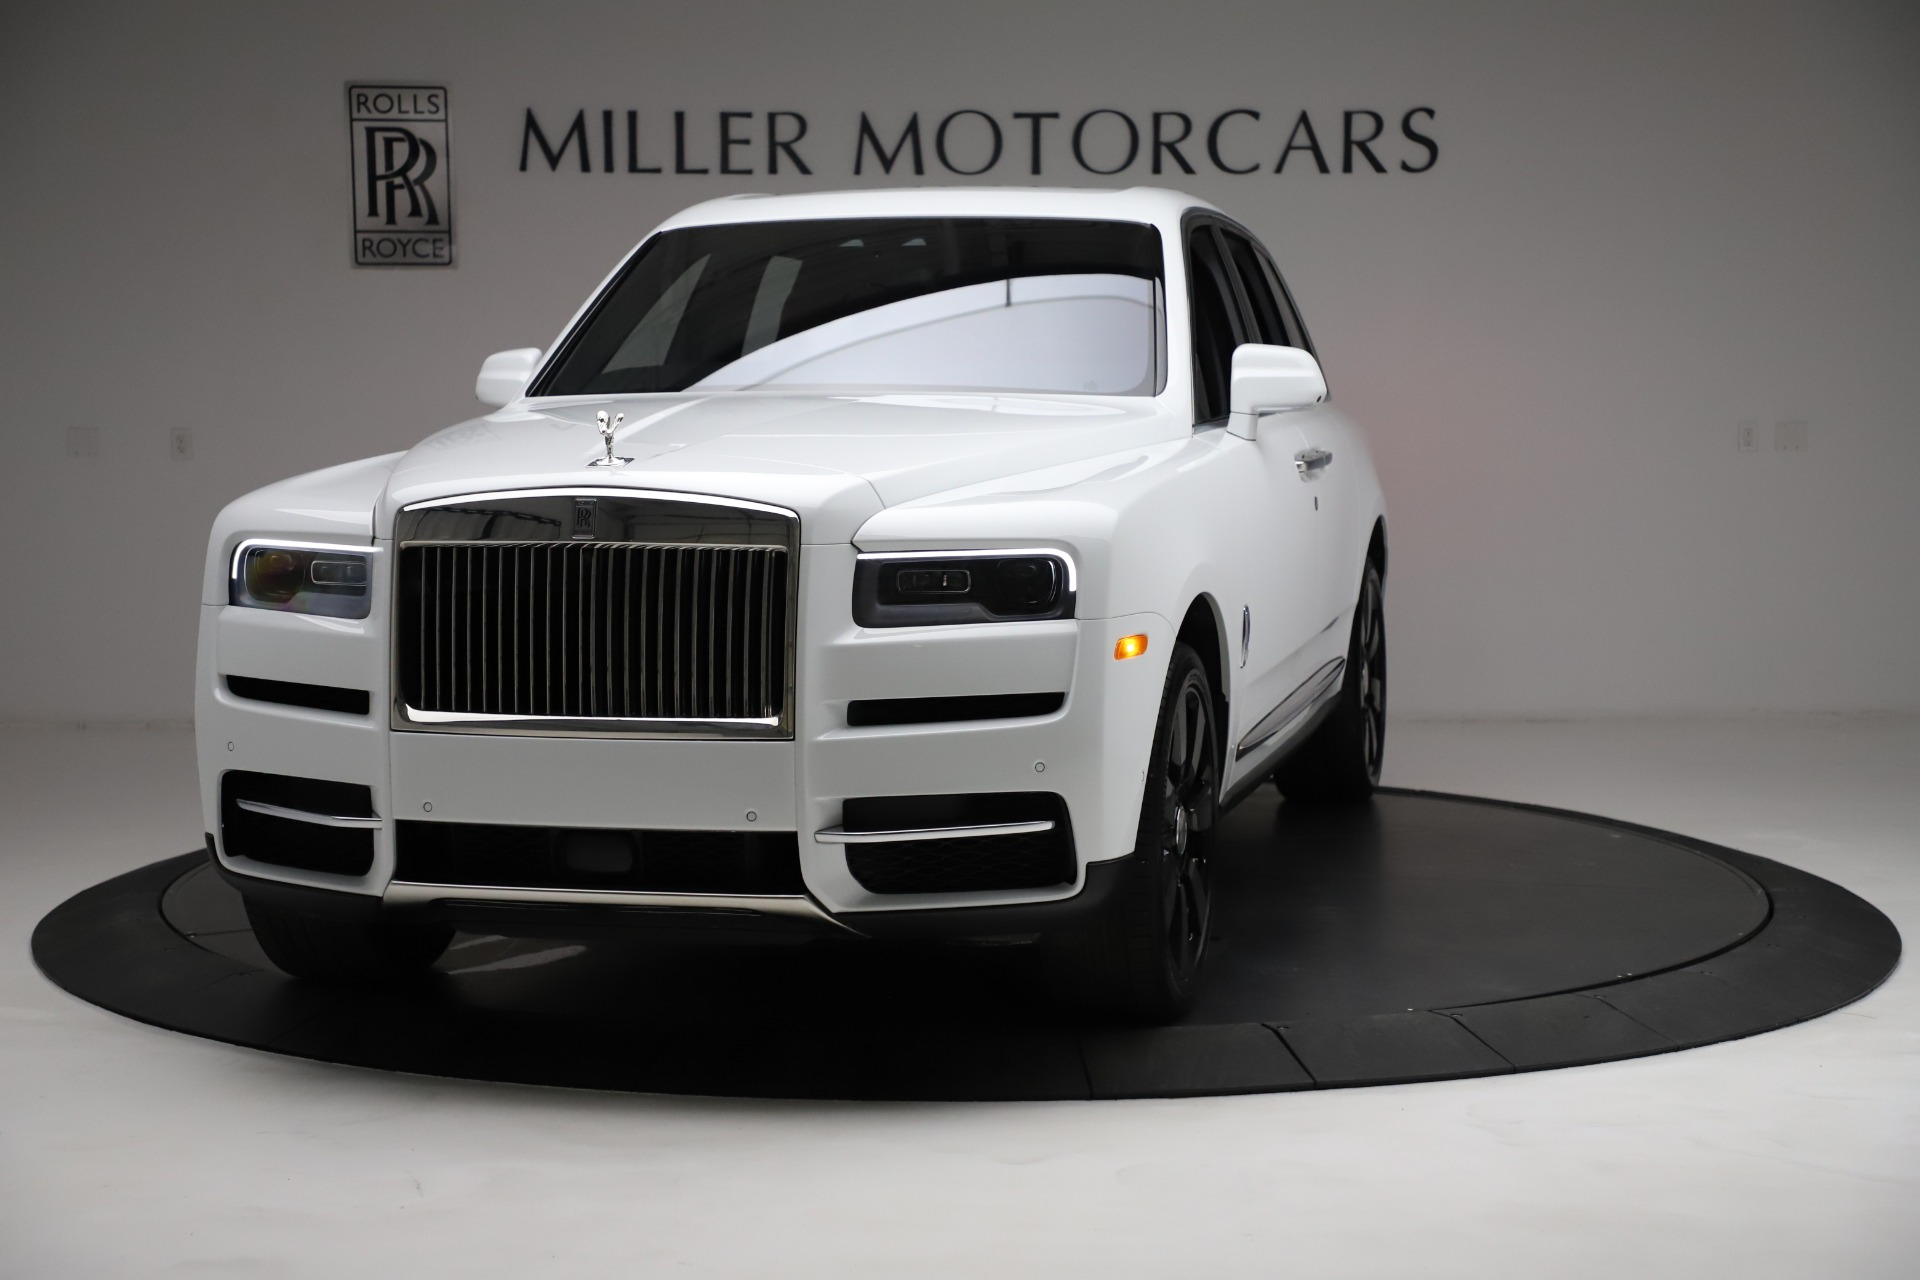 Used 2021 Rolls-Royce Cullinan for sale Sold at McLaren Greenwich in Greenwich CT 06830 1